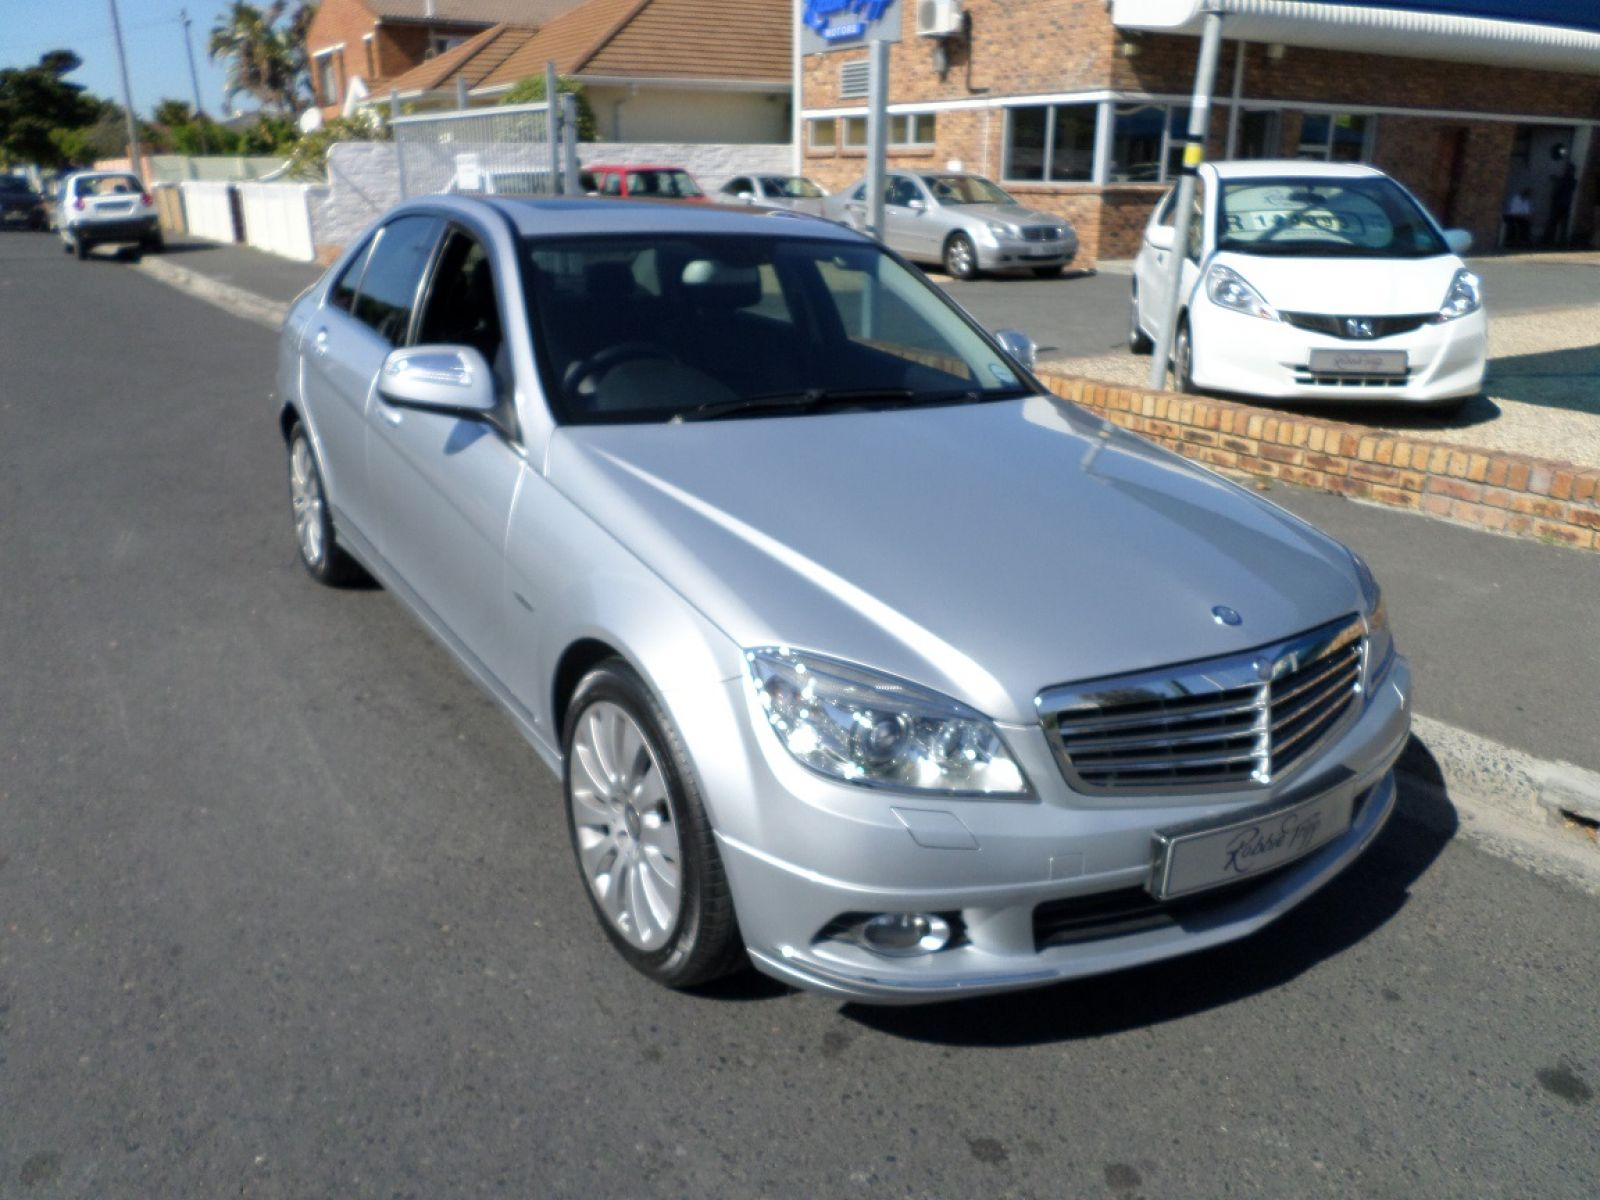 MERCEDES-BENZ C-CLASS SEDAN 2009